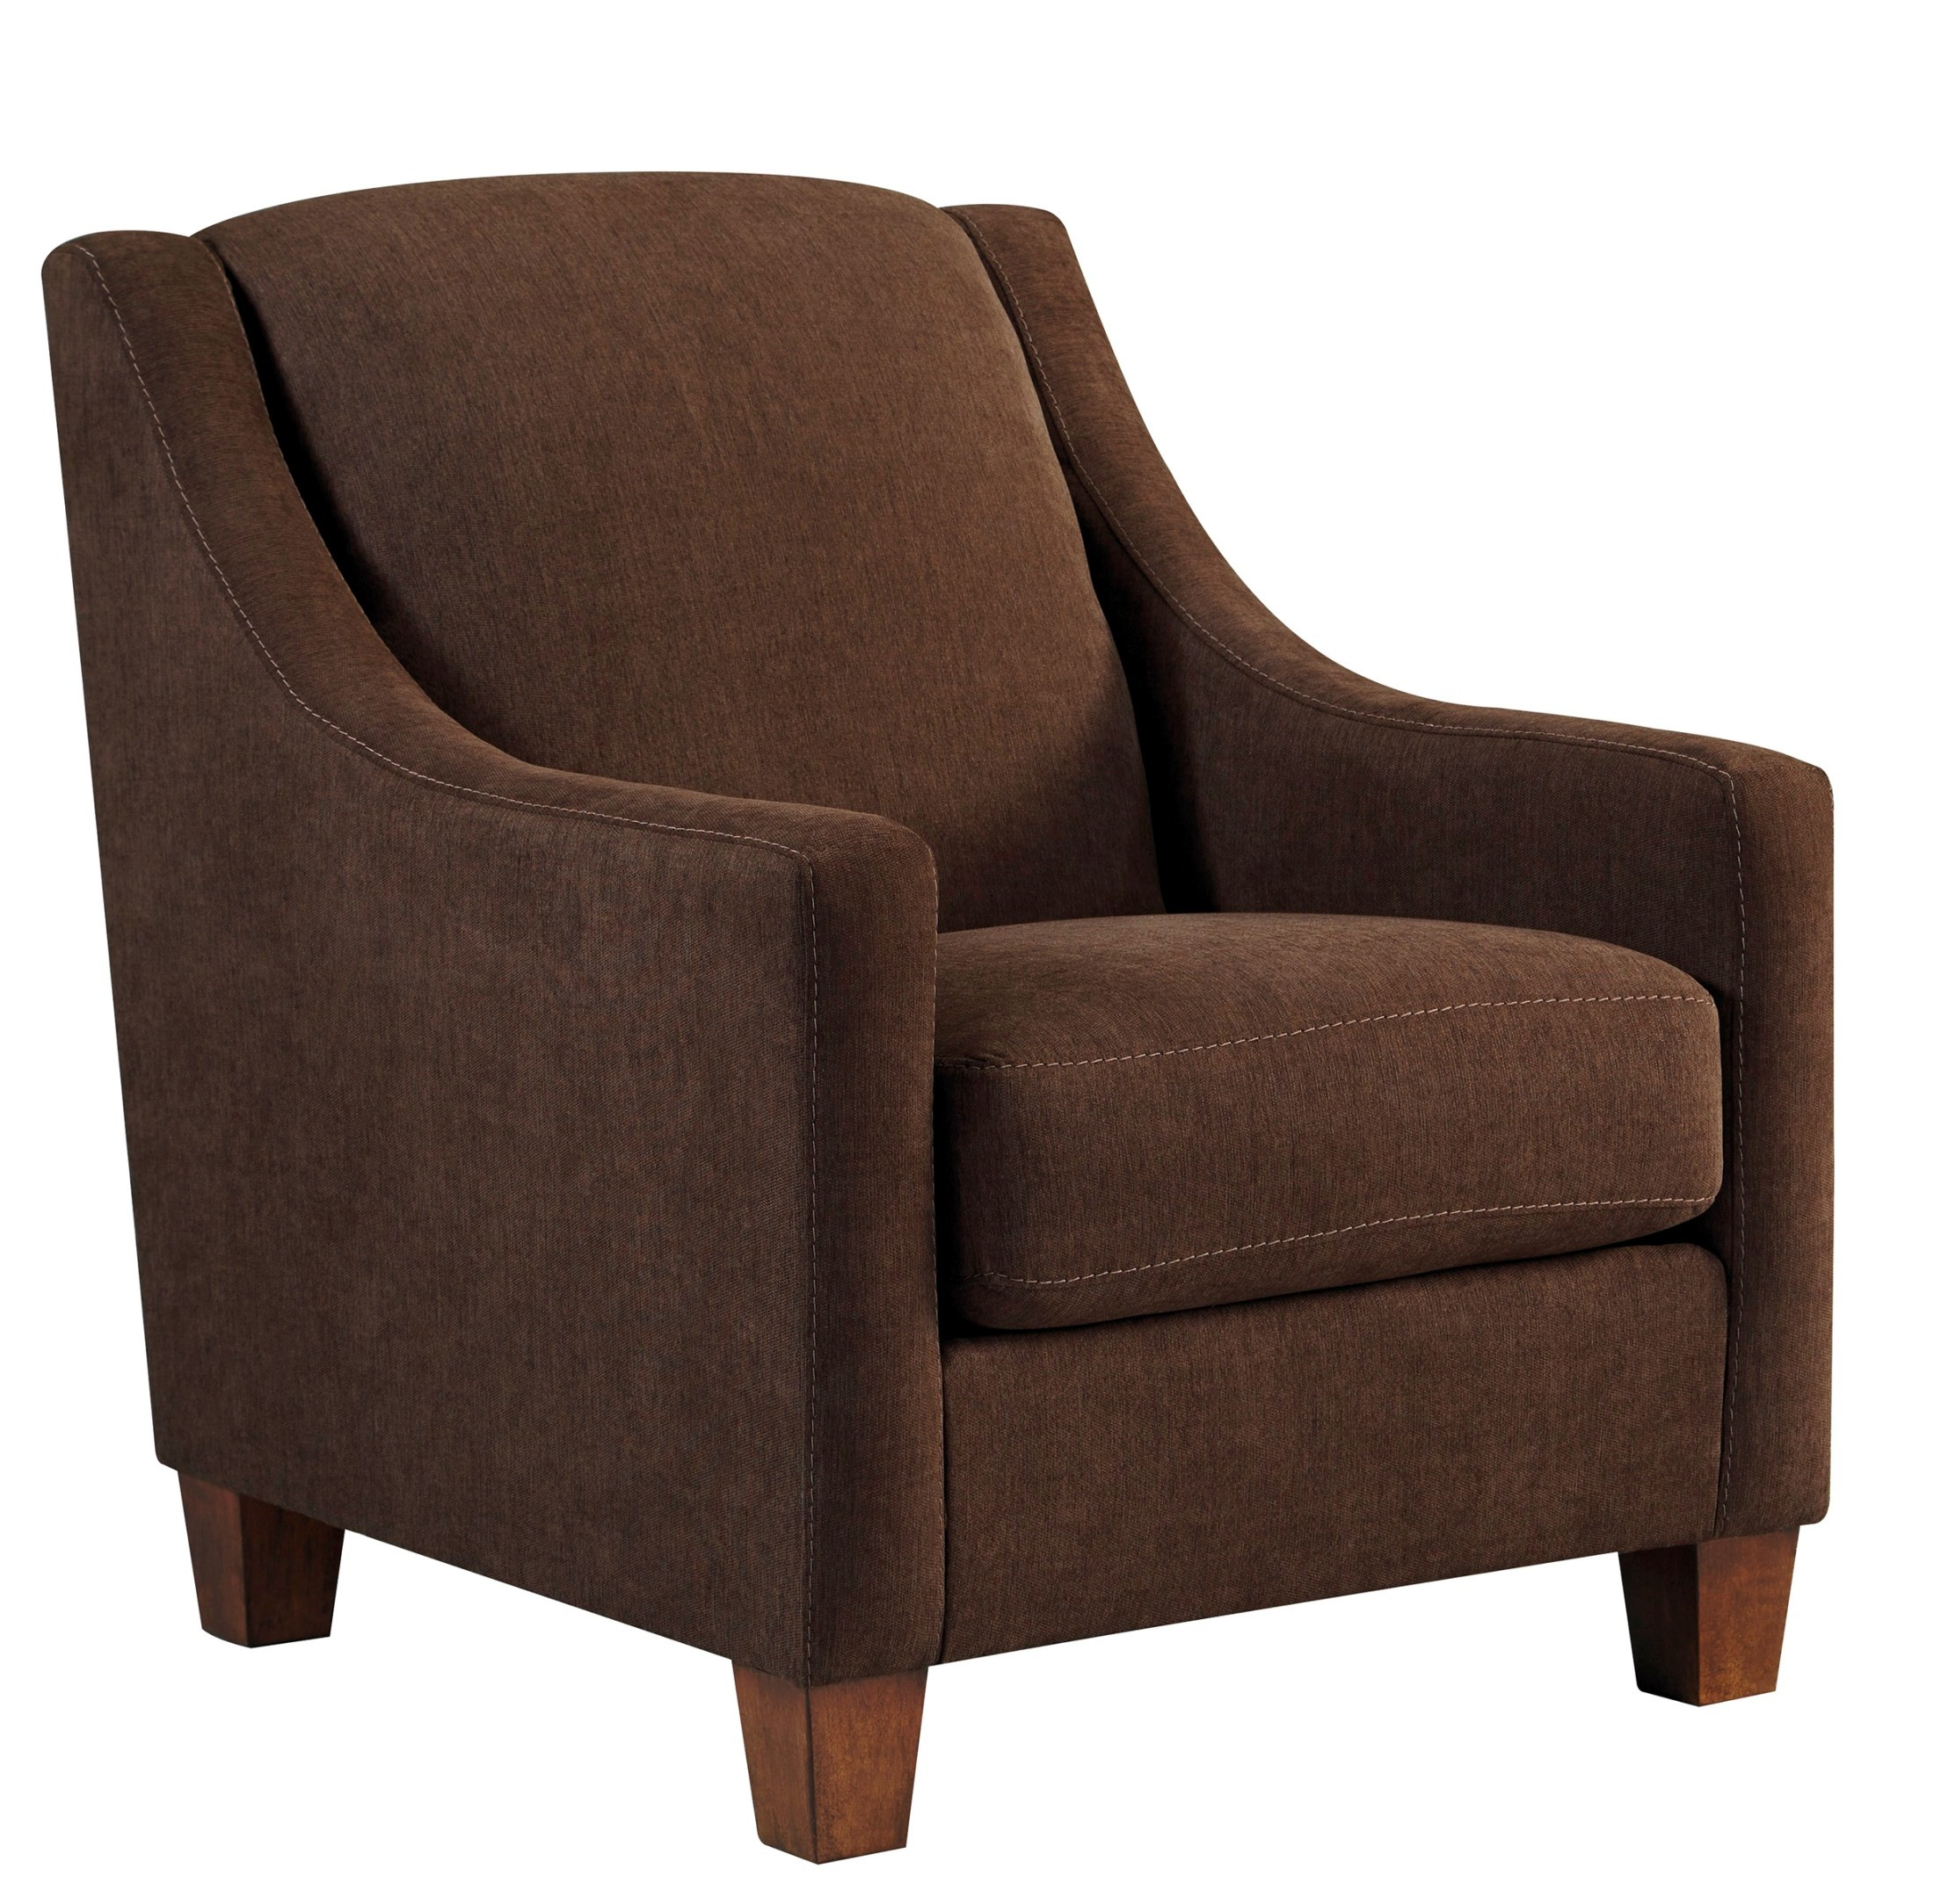 Maier Walnut Accent Chair From Ashley 4520121 Coleman